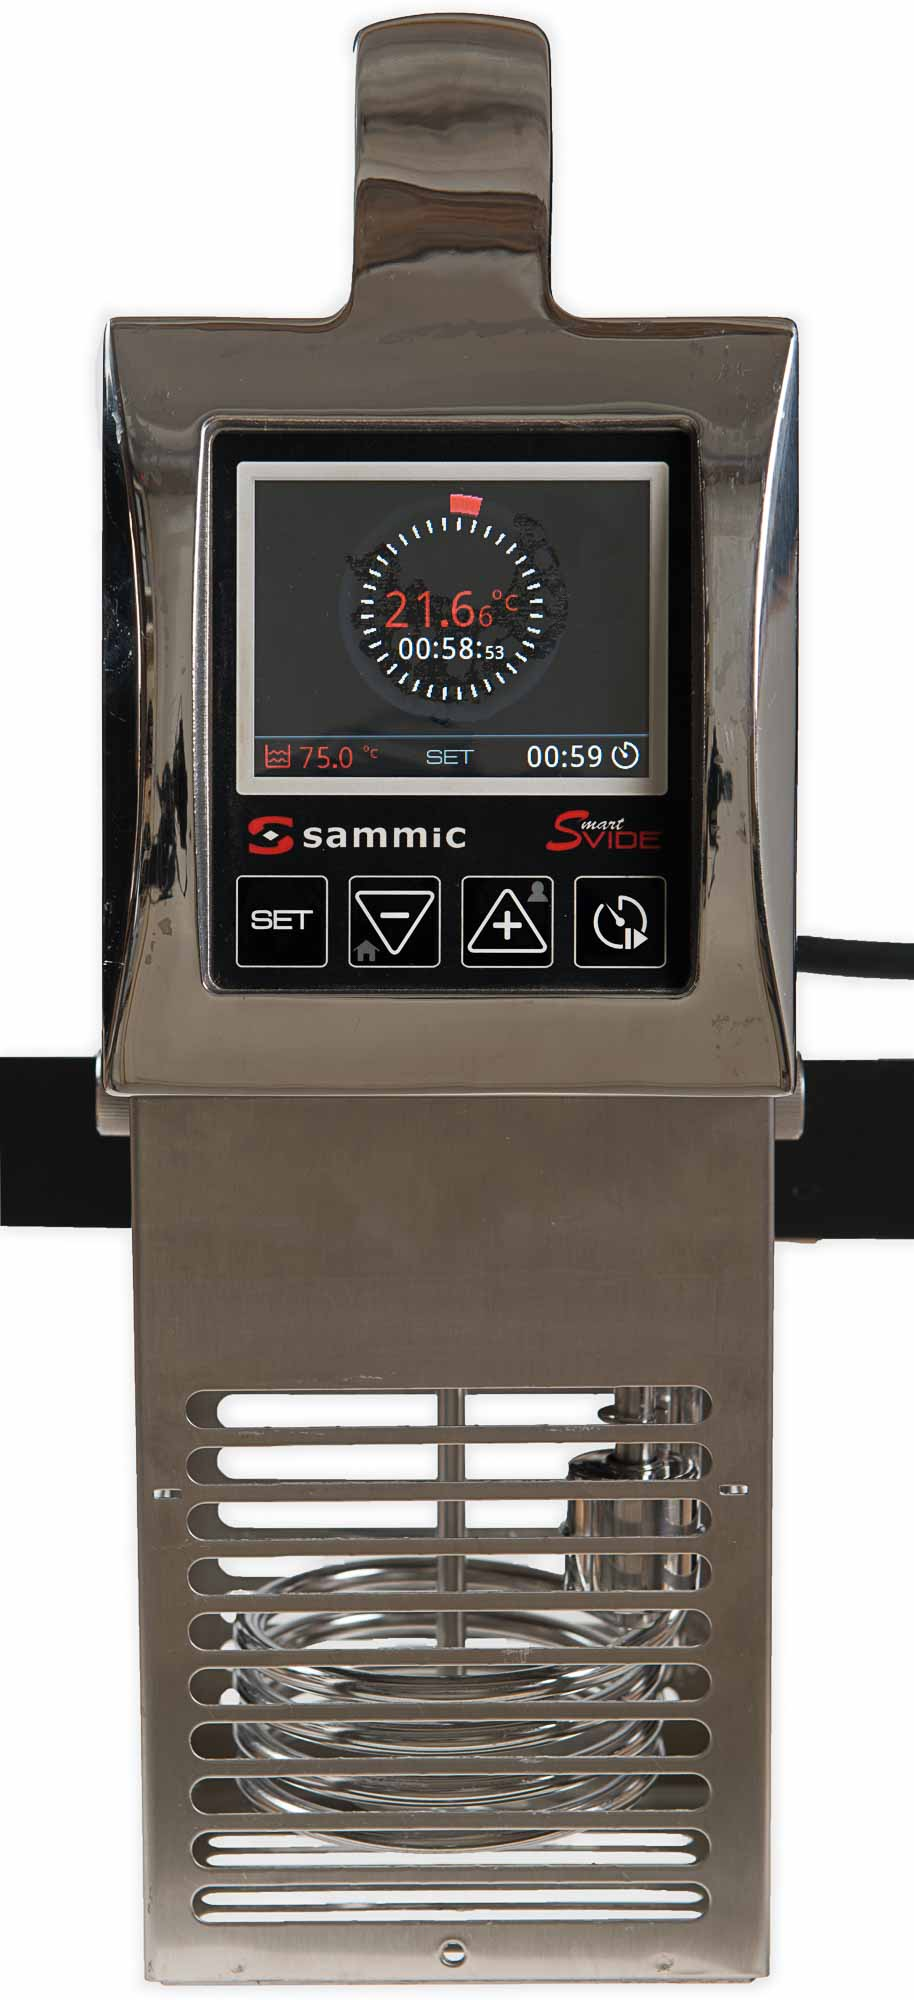 sammic_smartvide8plus_01